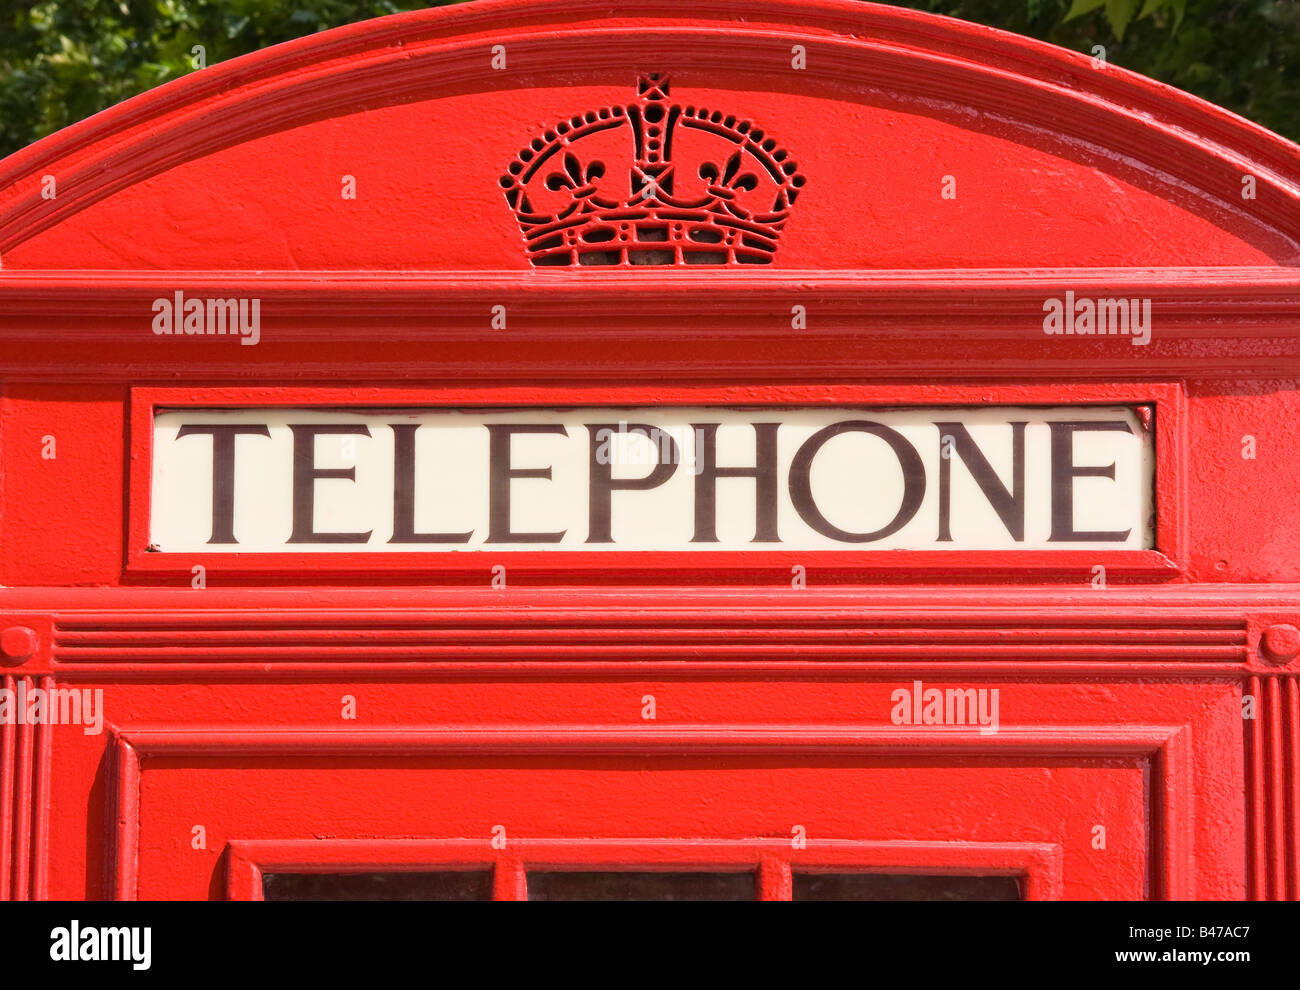 Traditional red telephone box, London, UK - Stock Image